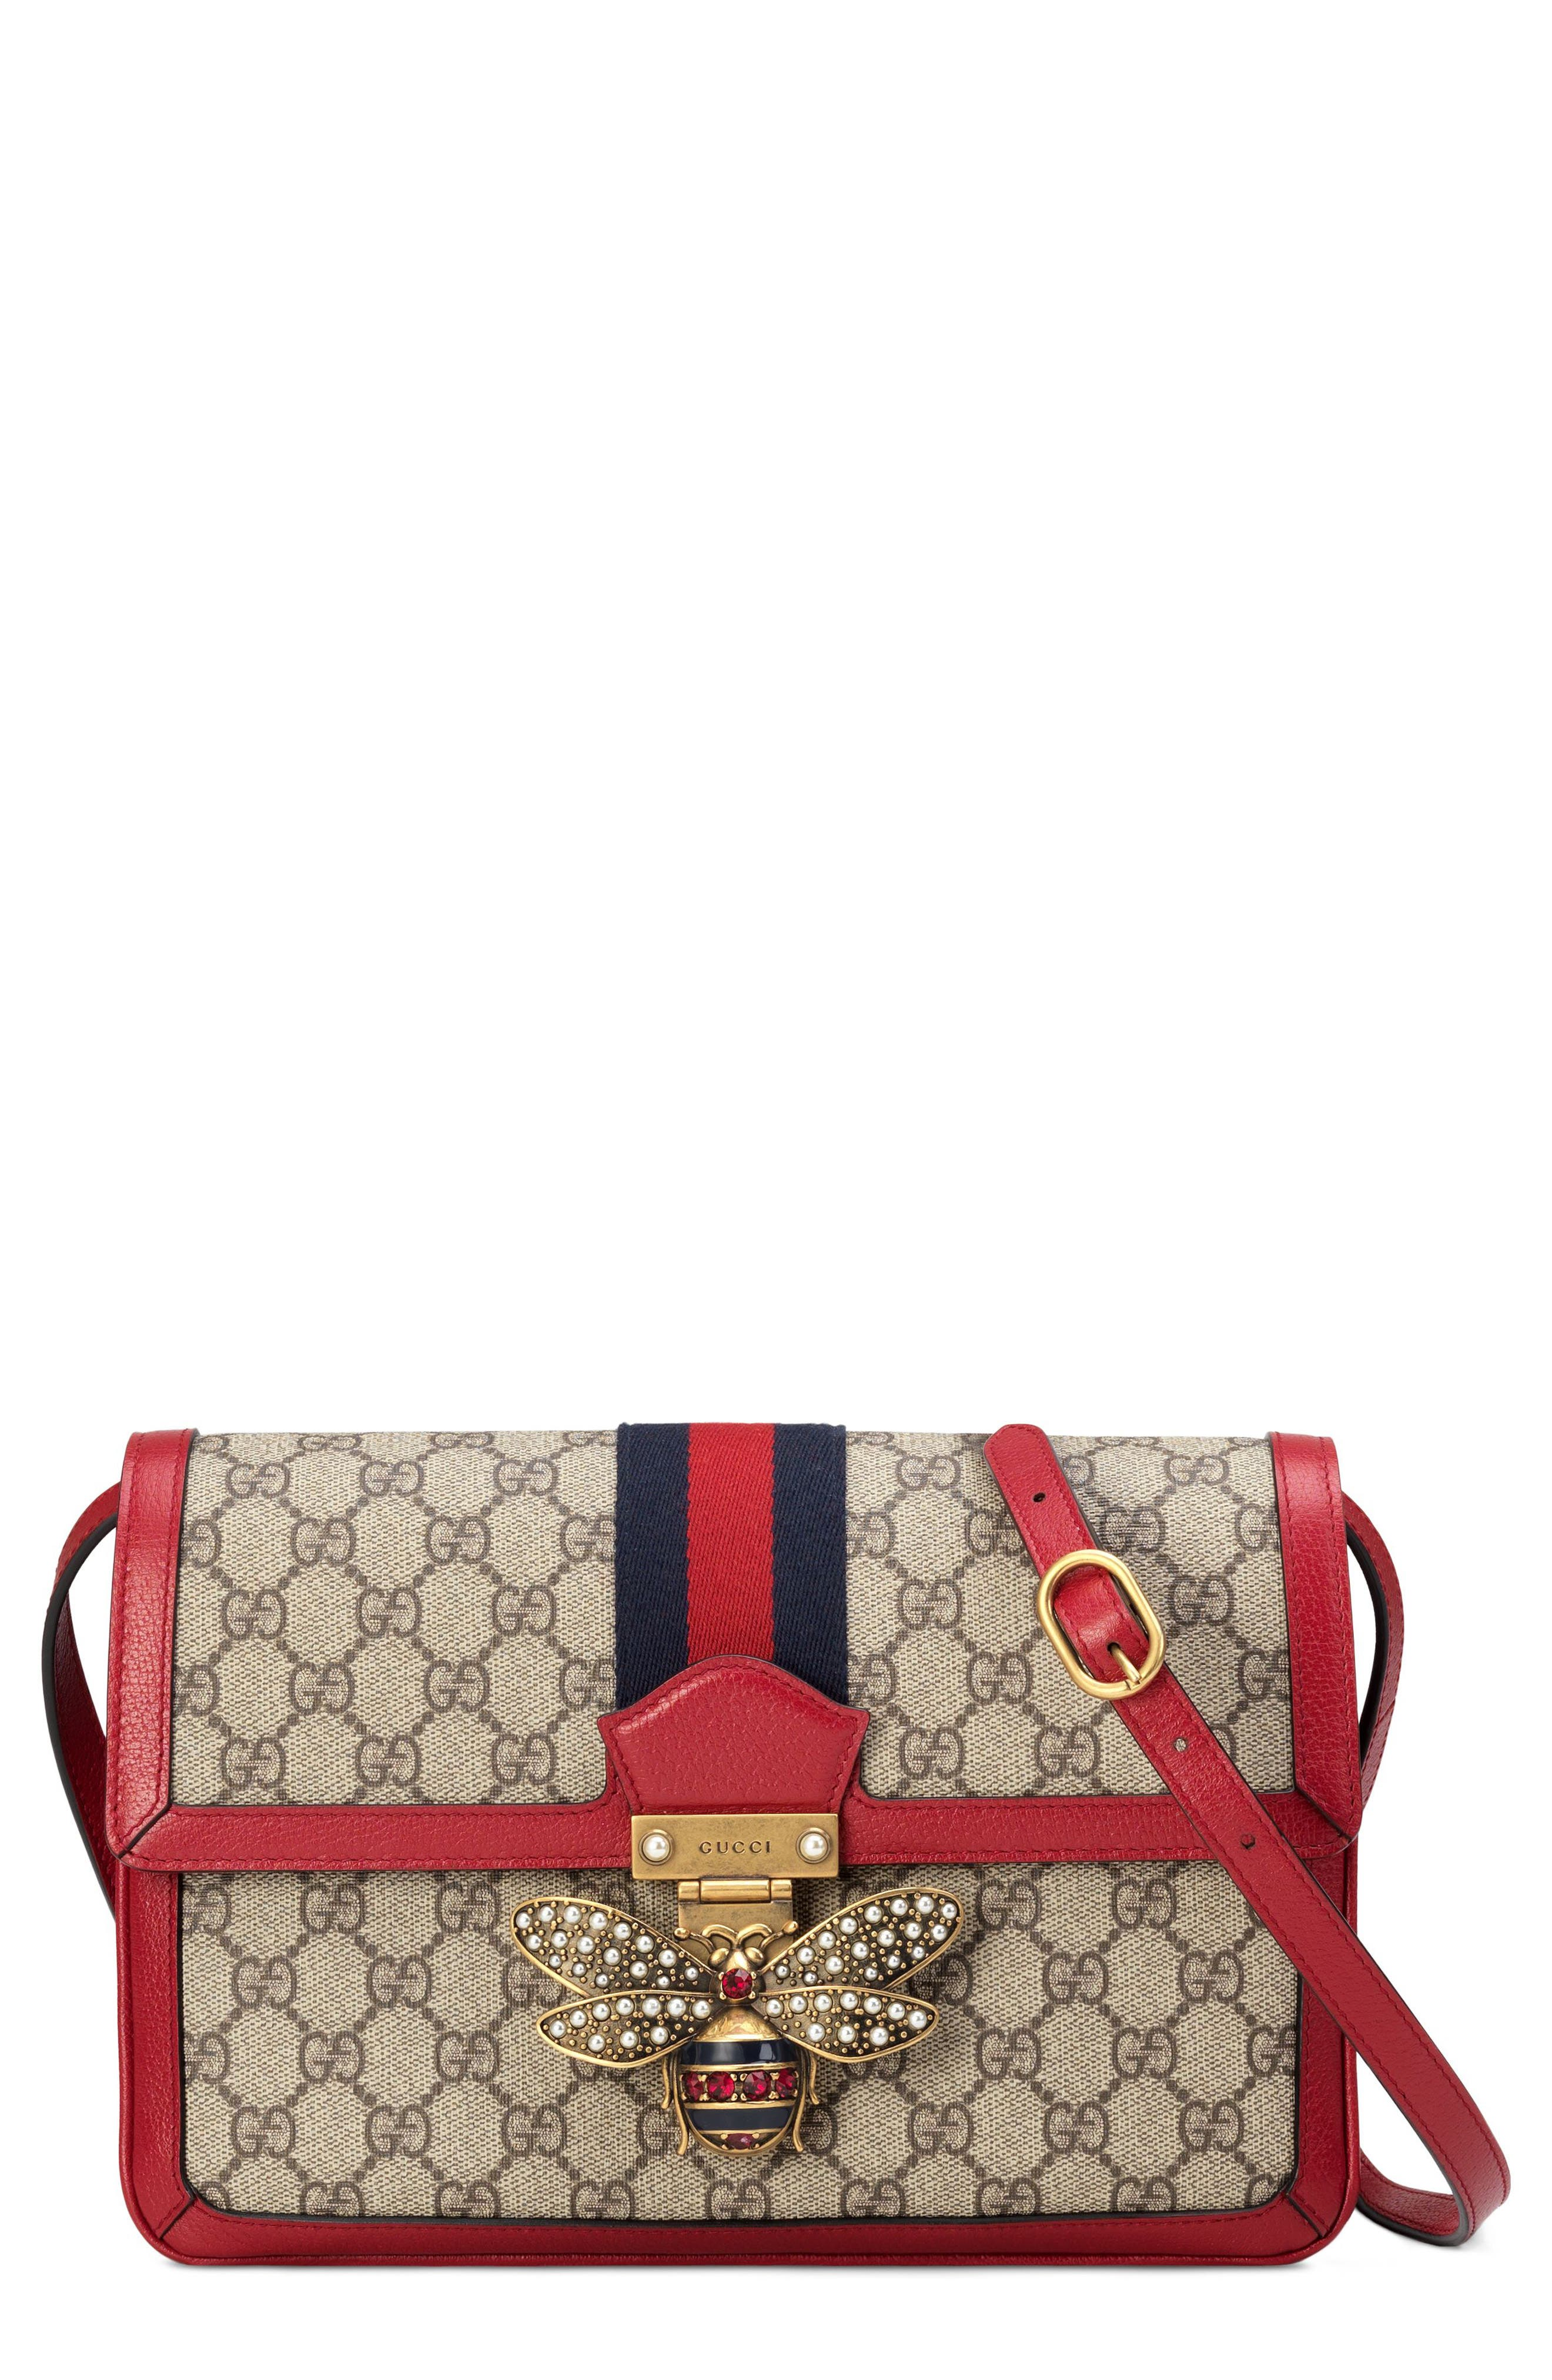 Queen Margaret GG Supreme Small Crossbody Bag,                         Main,                         color, Beige Ebony/ Blue Red/ Ruby